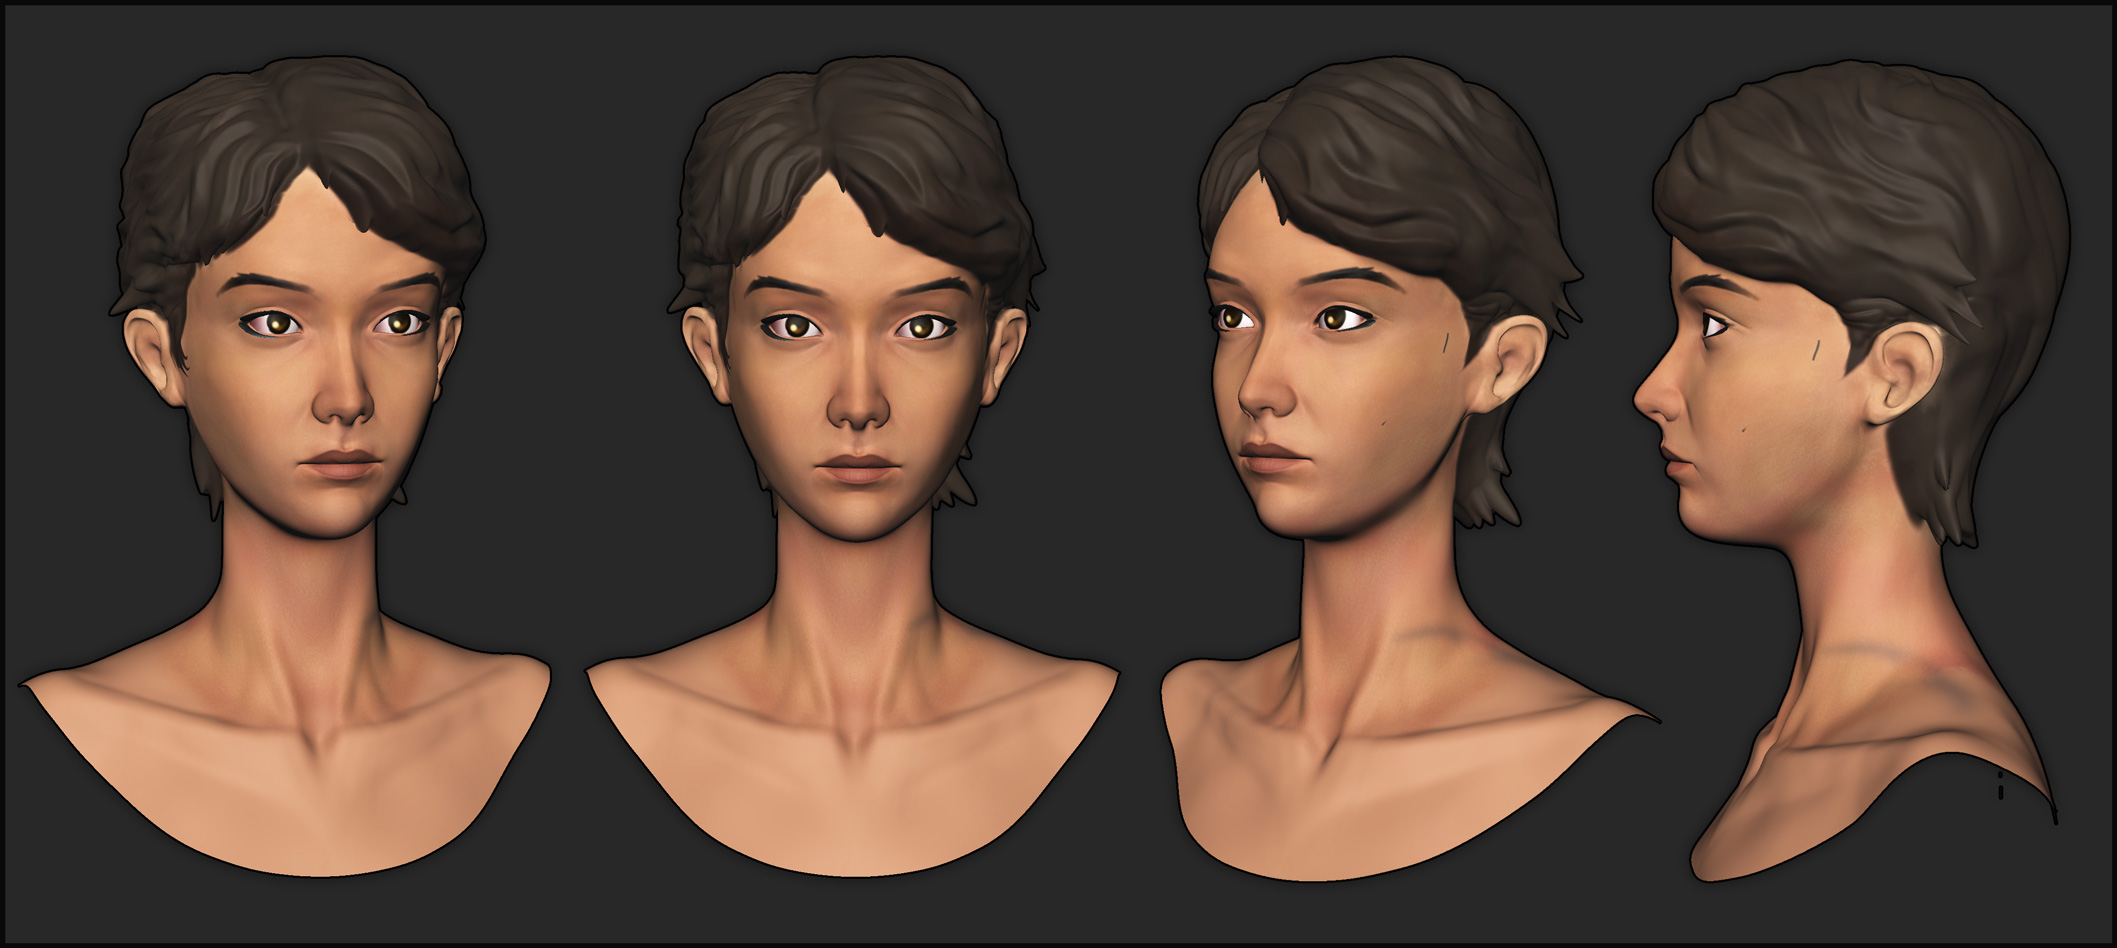 _wip_2__older_clementine_from_telltale_s_twd_by_yuliuskrisna-d862upo.jpg